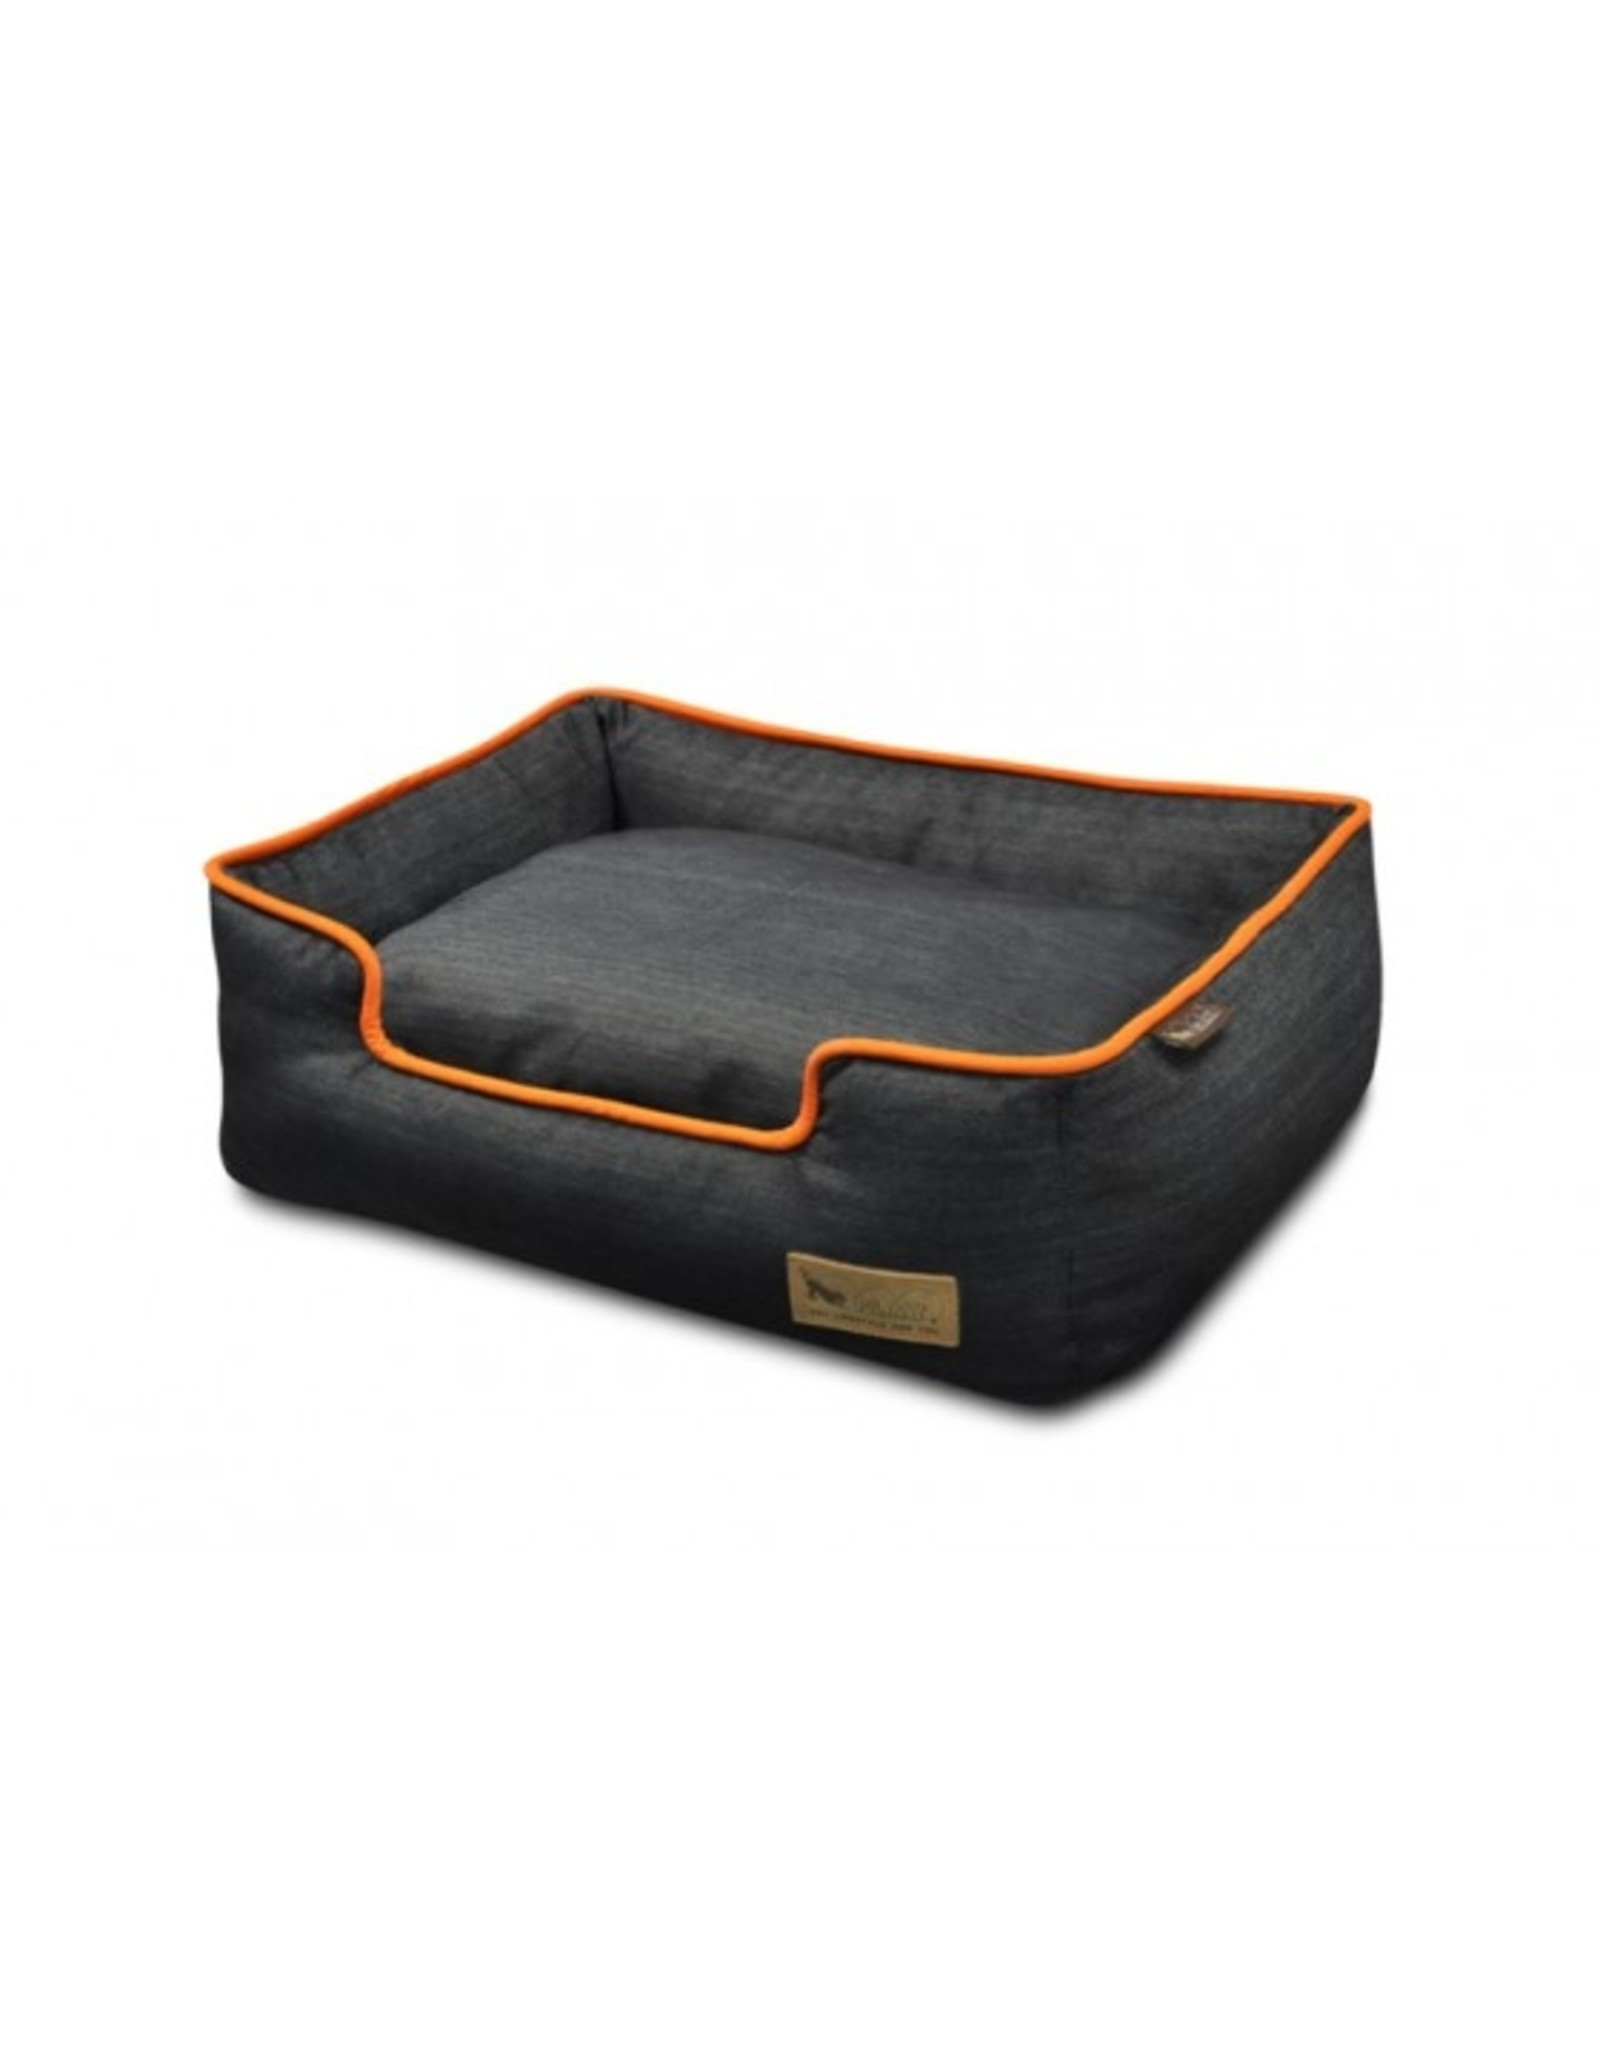 Play Play Lounge Bed